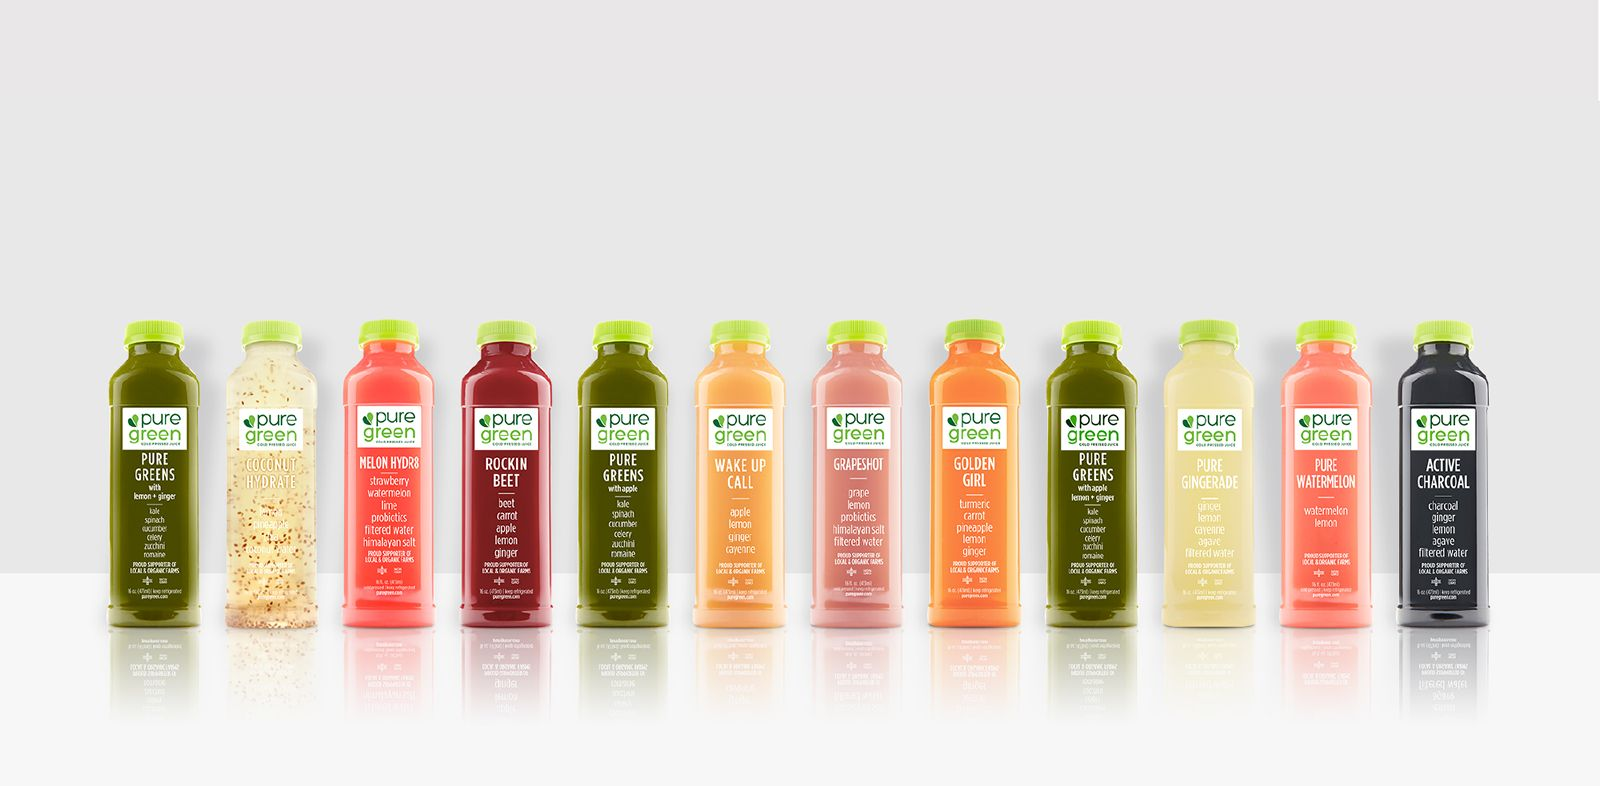 Pure Green Franchise Partners With Republic.co for New Crowdfunding Campaign